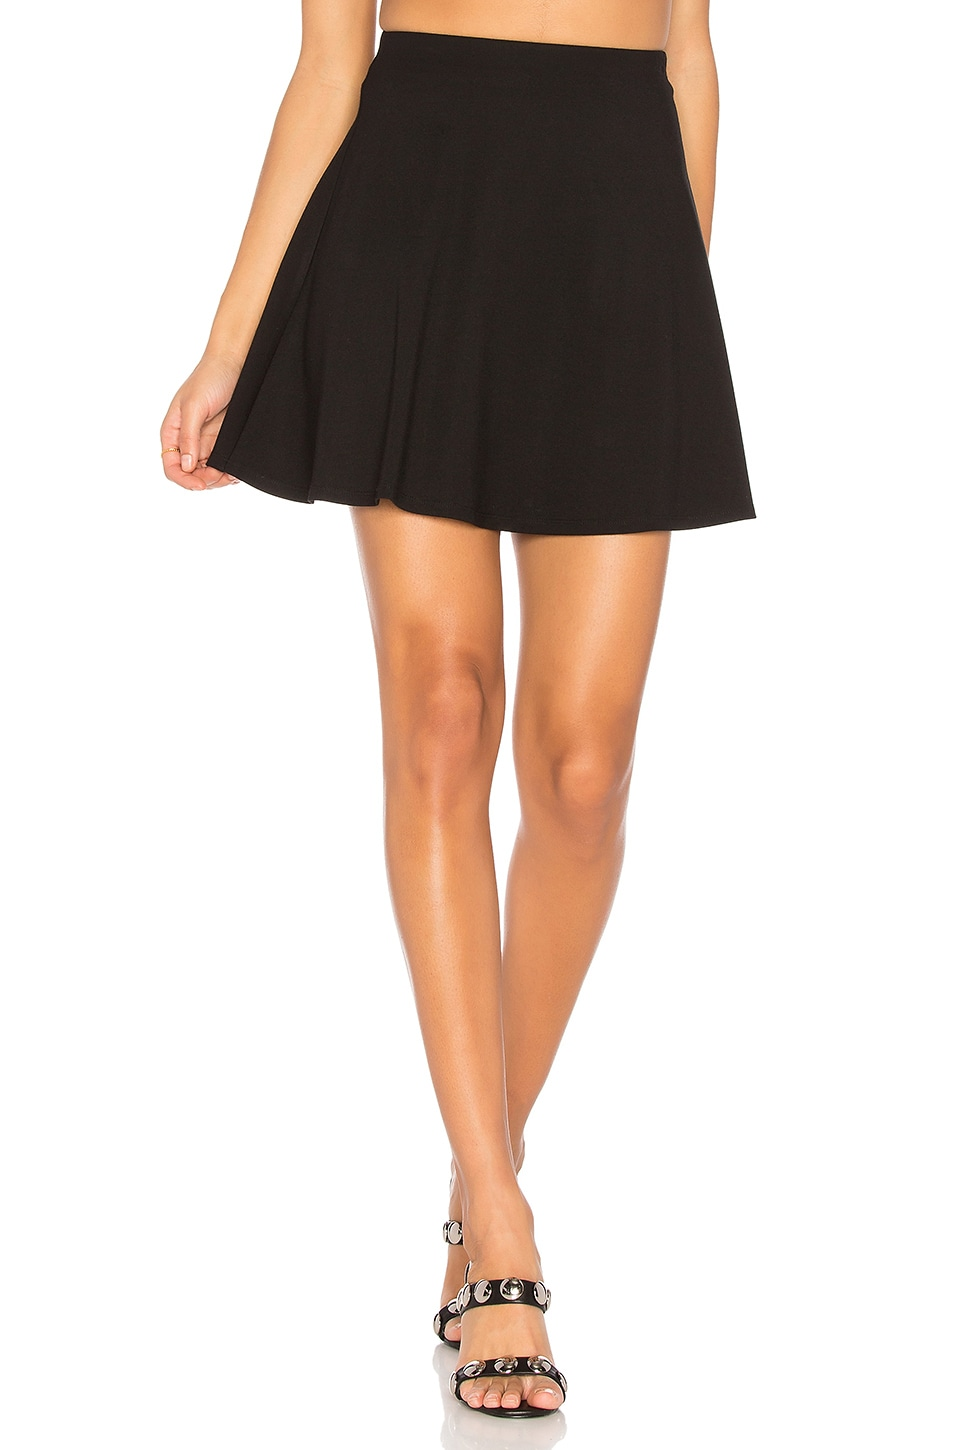 LPA Skirt 204 in Black